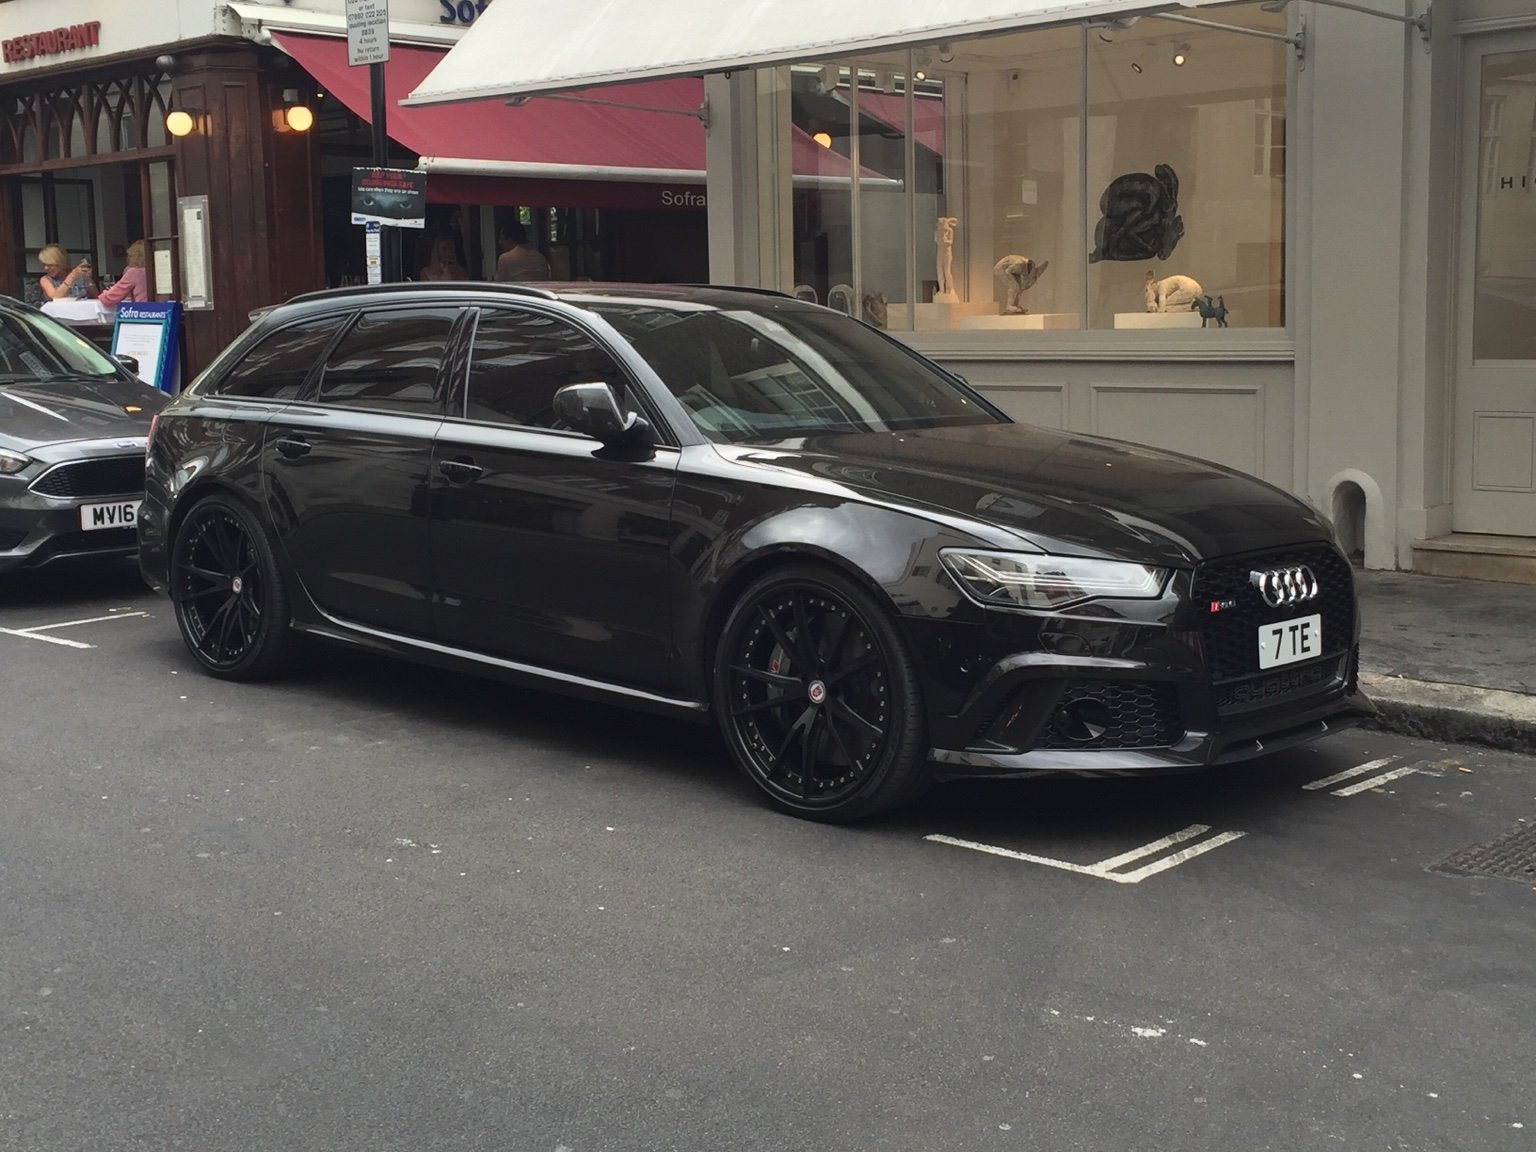 Black C7 Rs6 Hre Wheels Mayfair Rs246 Com Forum The World S 1 Audi R S And Rs Enthusiast Community